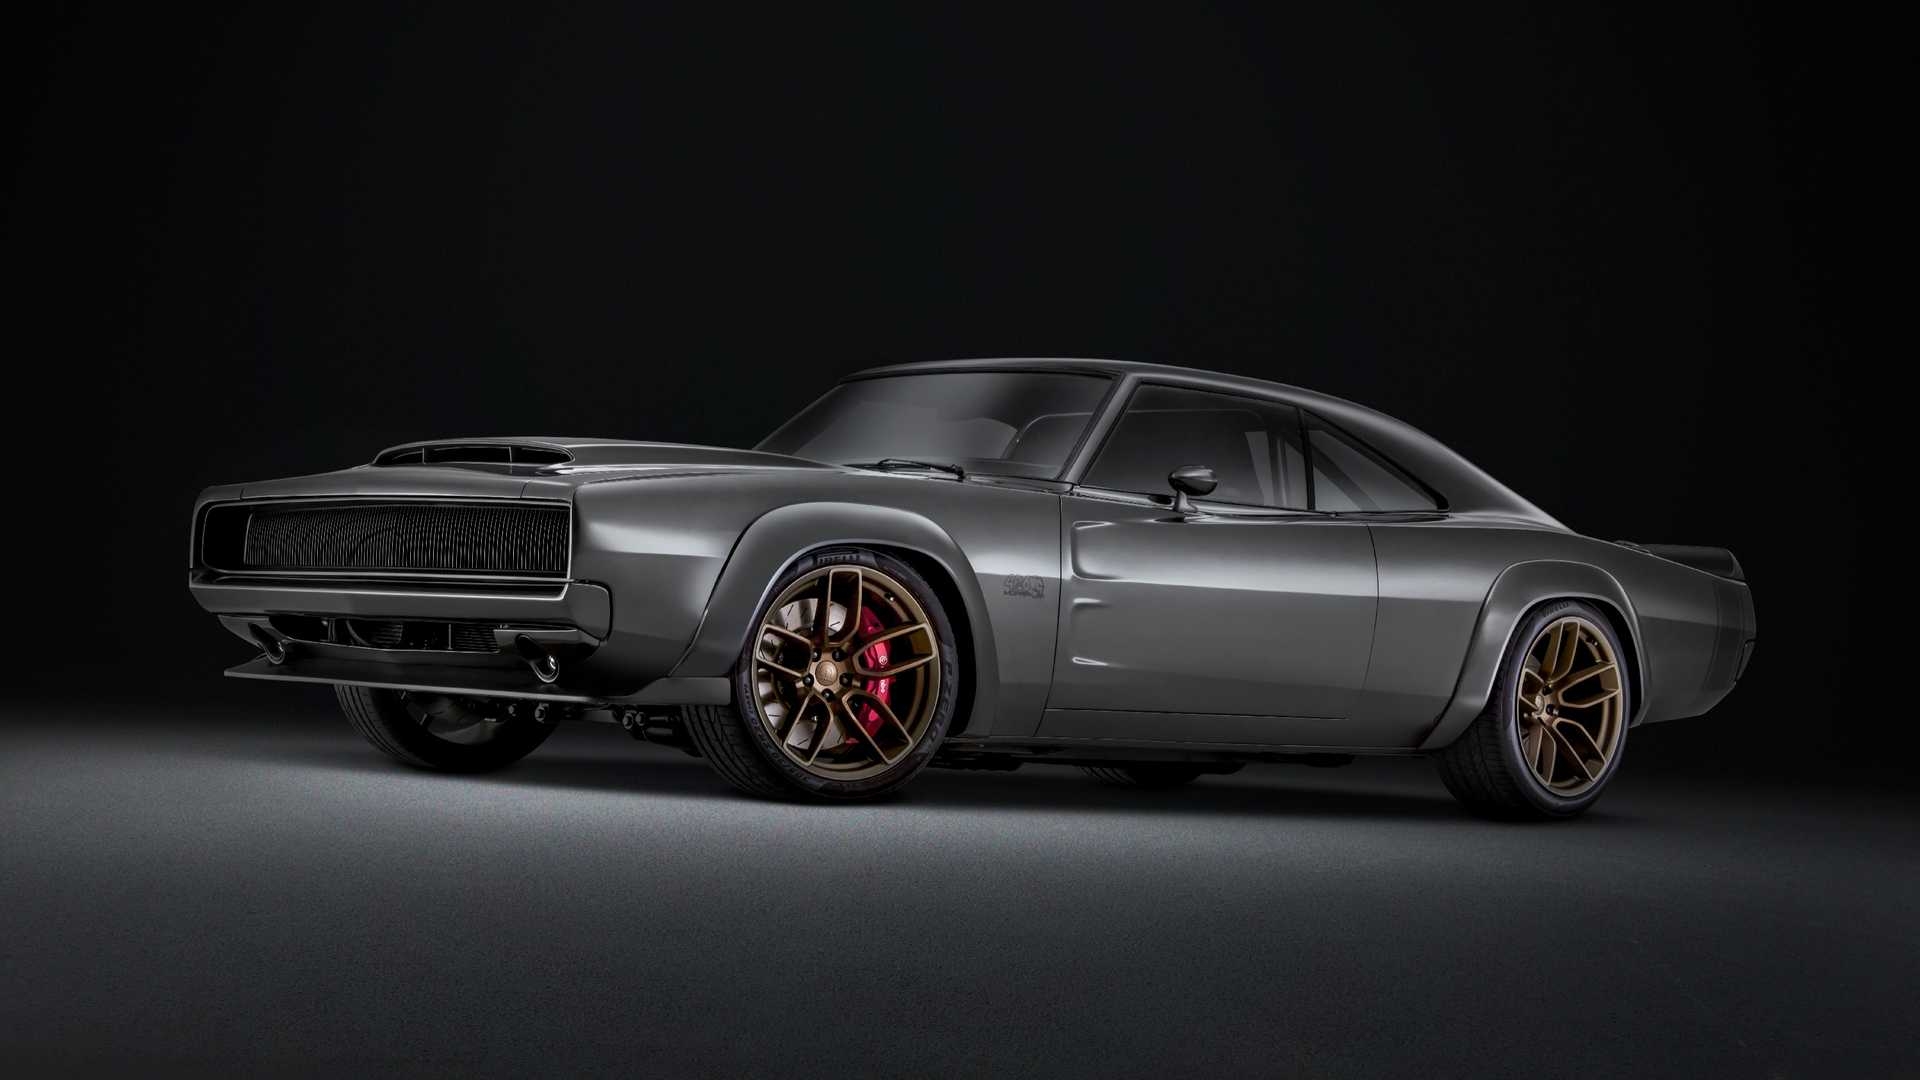 2018 Charger Demon >> 1968 Dodge Super Charger Debuts with 1,000 HP Hellephant Crate Engine - autoevolution